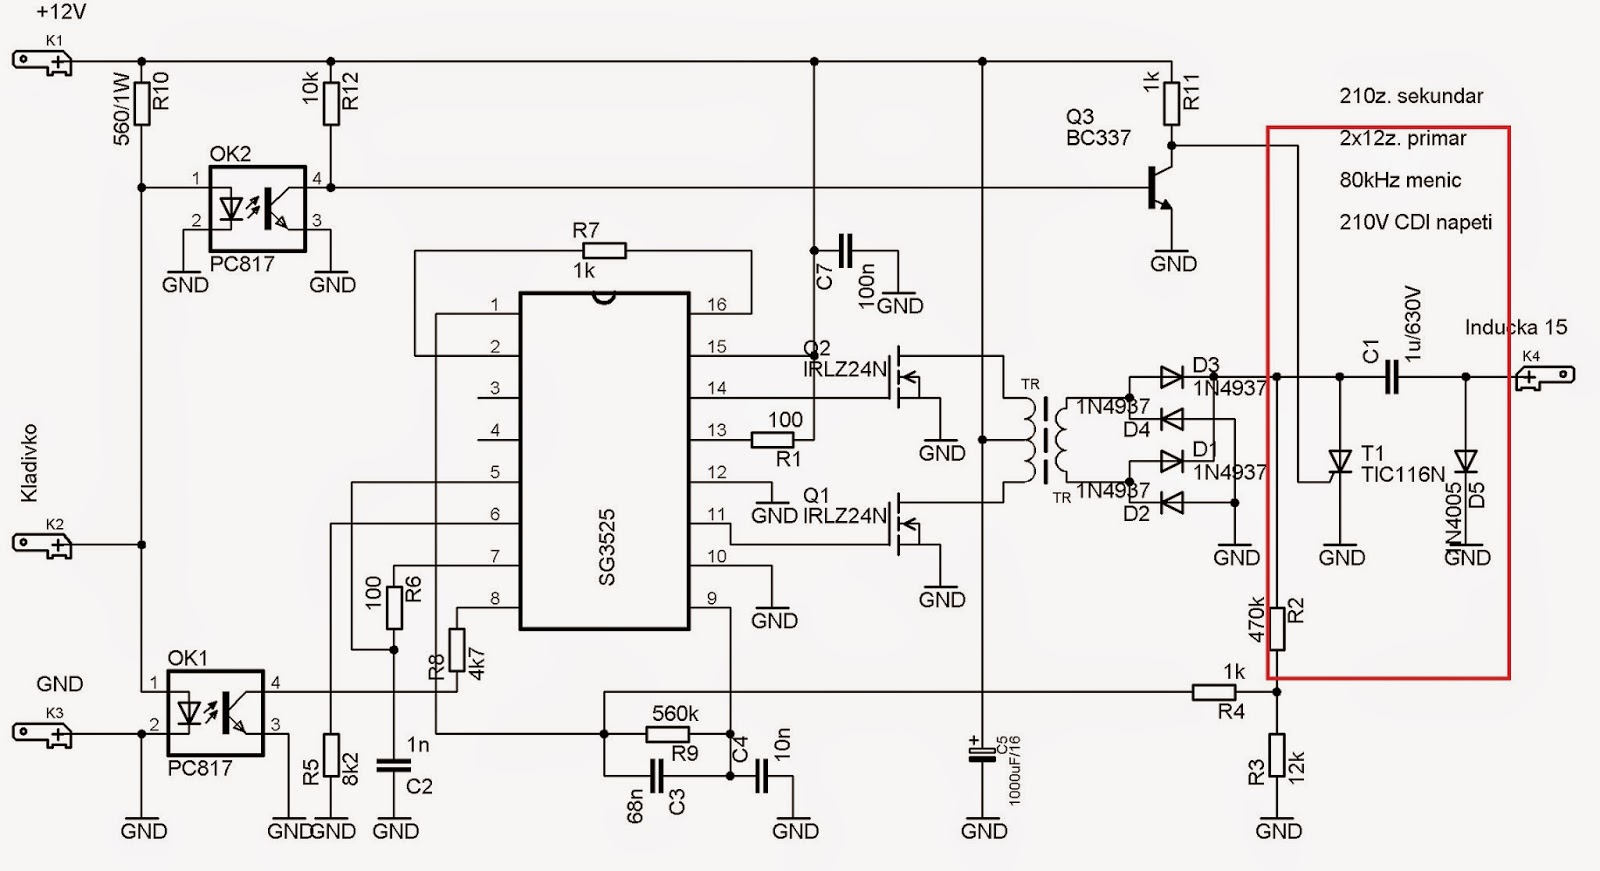 Dc Cdi Ignition Wiring Diagram | Wiring Liry  Lead Motor Wiring Diagram Dc on single-phase motor reversing diagram, 3 phase transformer connection diagram, marathon electric motor diagram, 6 wire dc motor diagram, 9 lead motor diagram, simple electric motor diagram, 3 phase motor connection diagram, 6 lead electric motor, 9 wire motor diagram, leland electric motor parts diagram, 12 lead motor diagram,